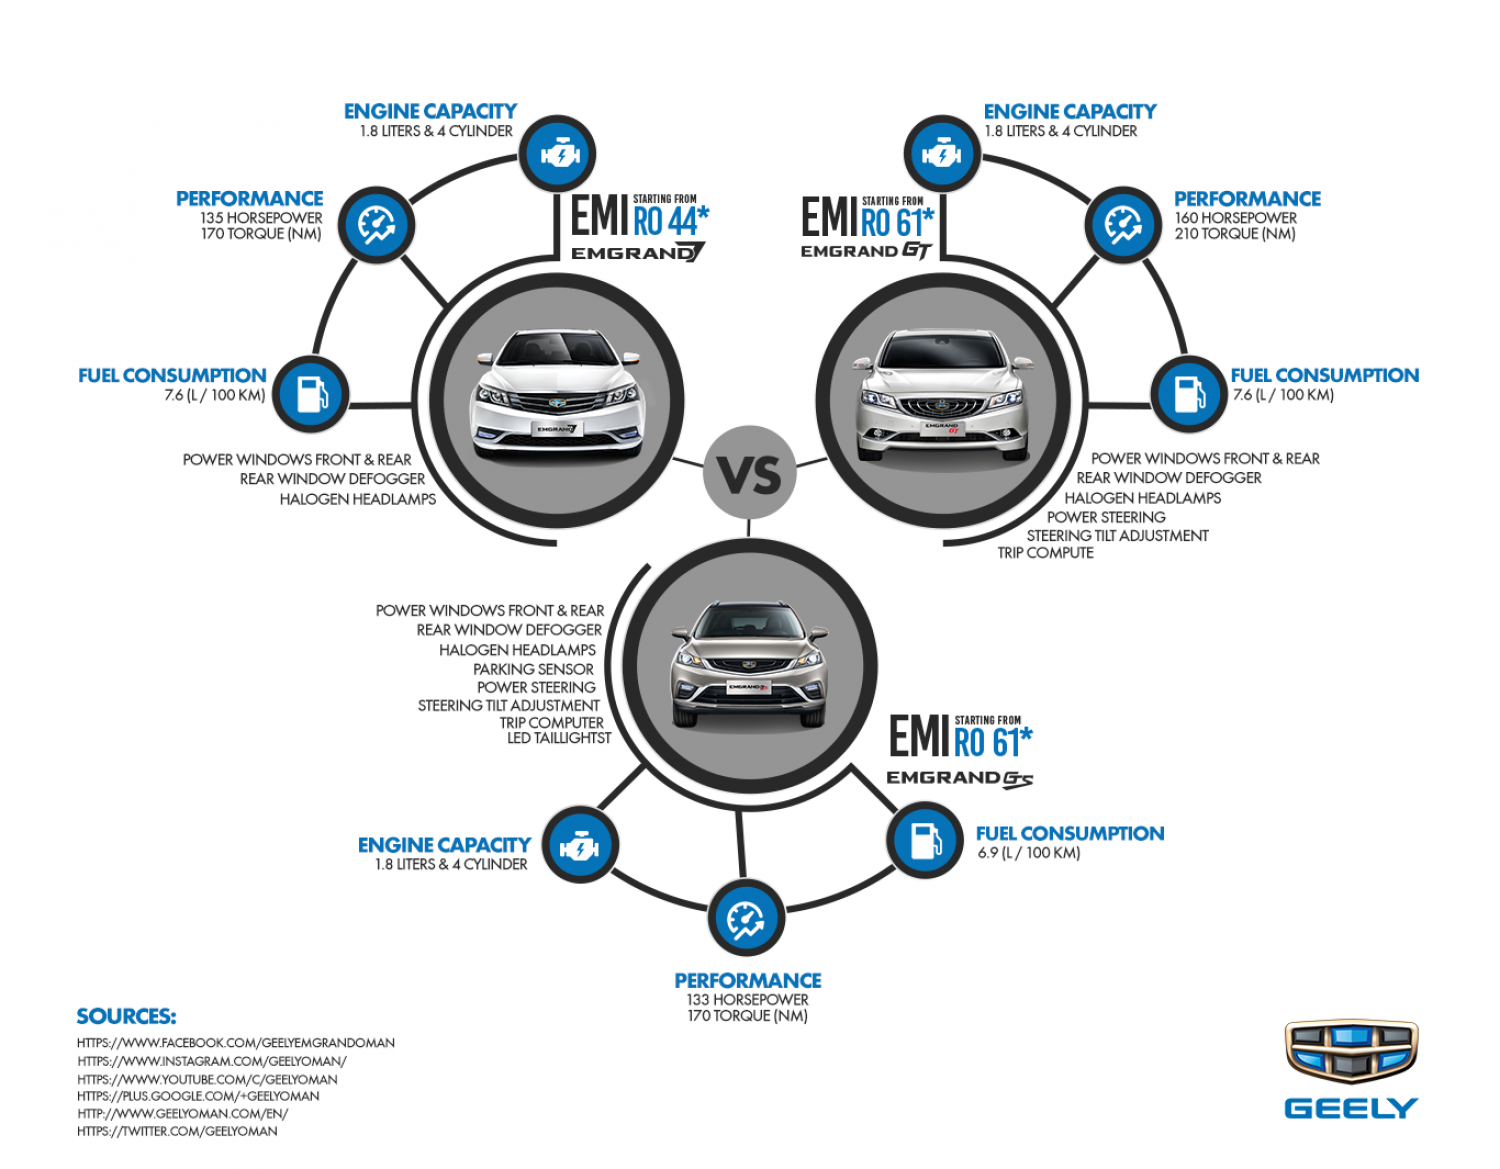 Geely Emgrand 7 Vs. Emgrand GT Vs. Emgrand GS Infographic